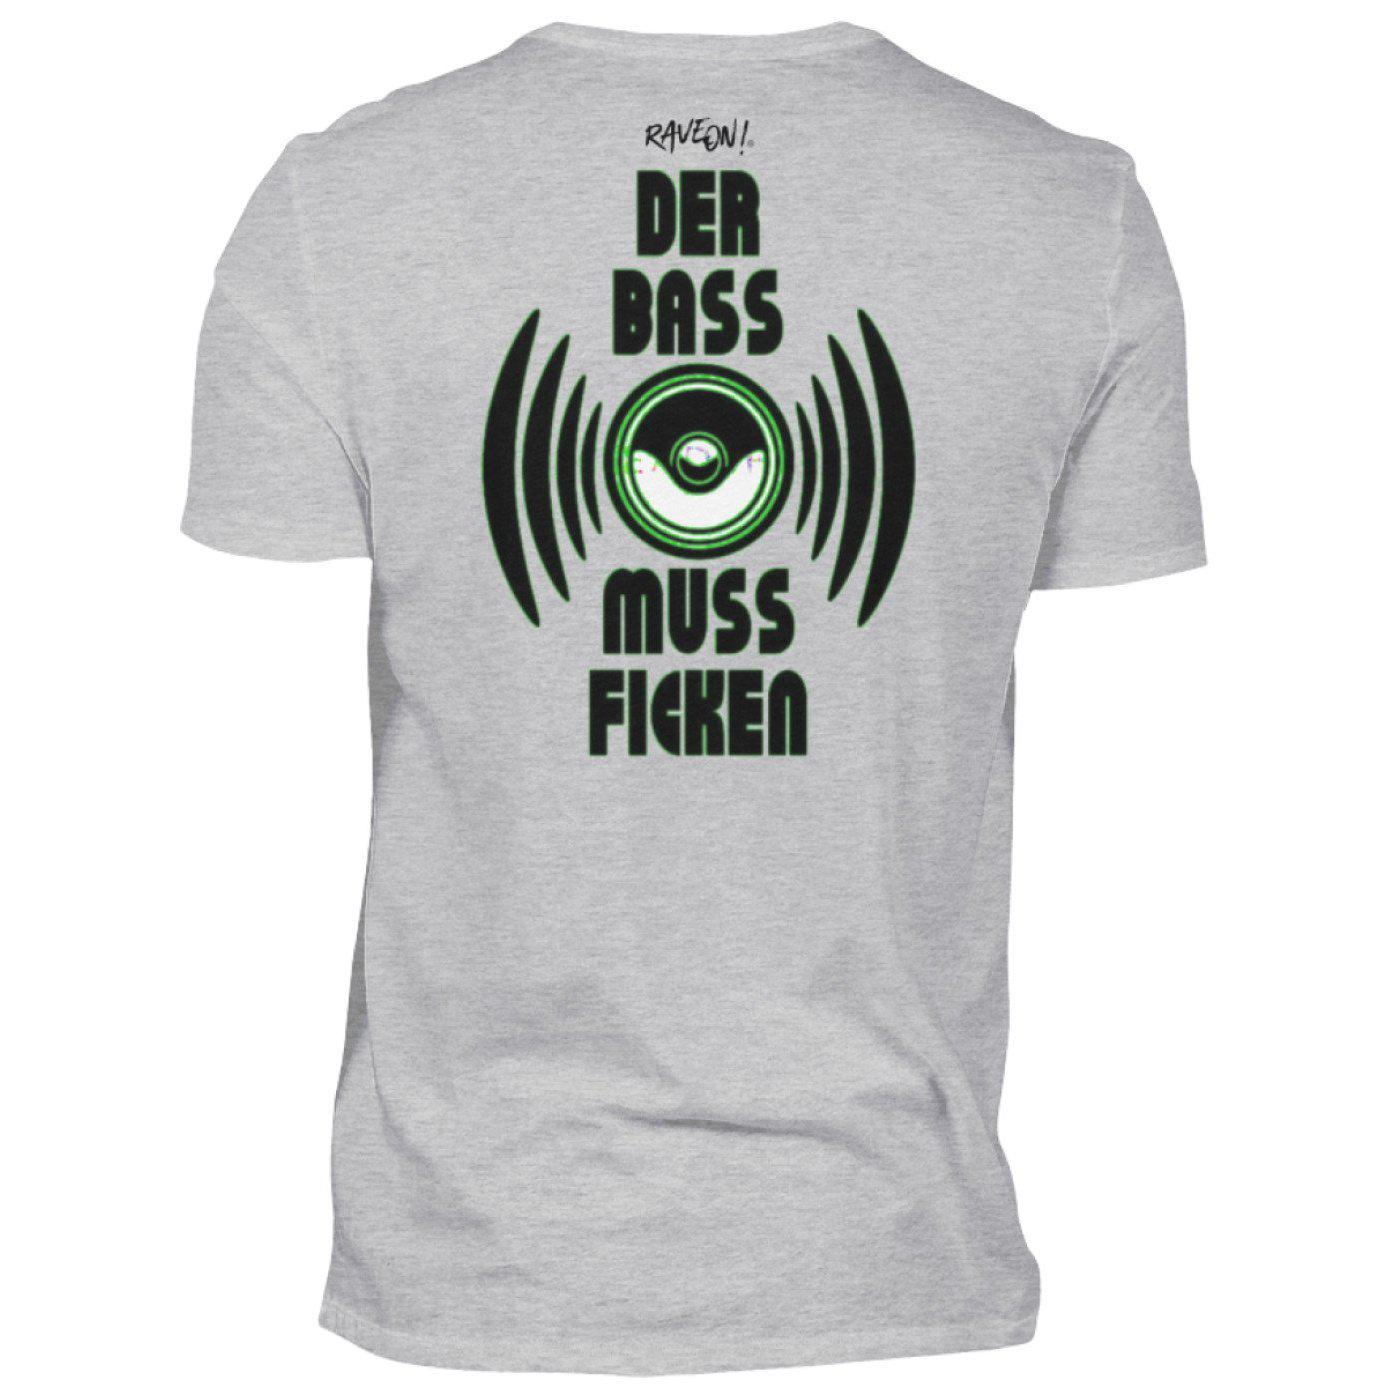 DER BASS MUSS F*n! Back Side - Rave On!® - Herren Shirt Herren Basic T-Shirt Heather Grey / S - Rave On!® der Club & Techno Szene Shop für Coole Junge Mode Streetwear Style & Fashion Outfits + Sexy Festival 420 Stuff